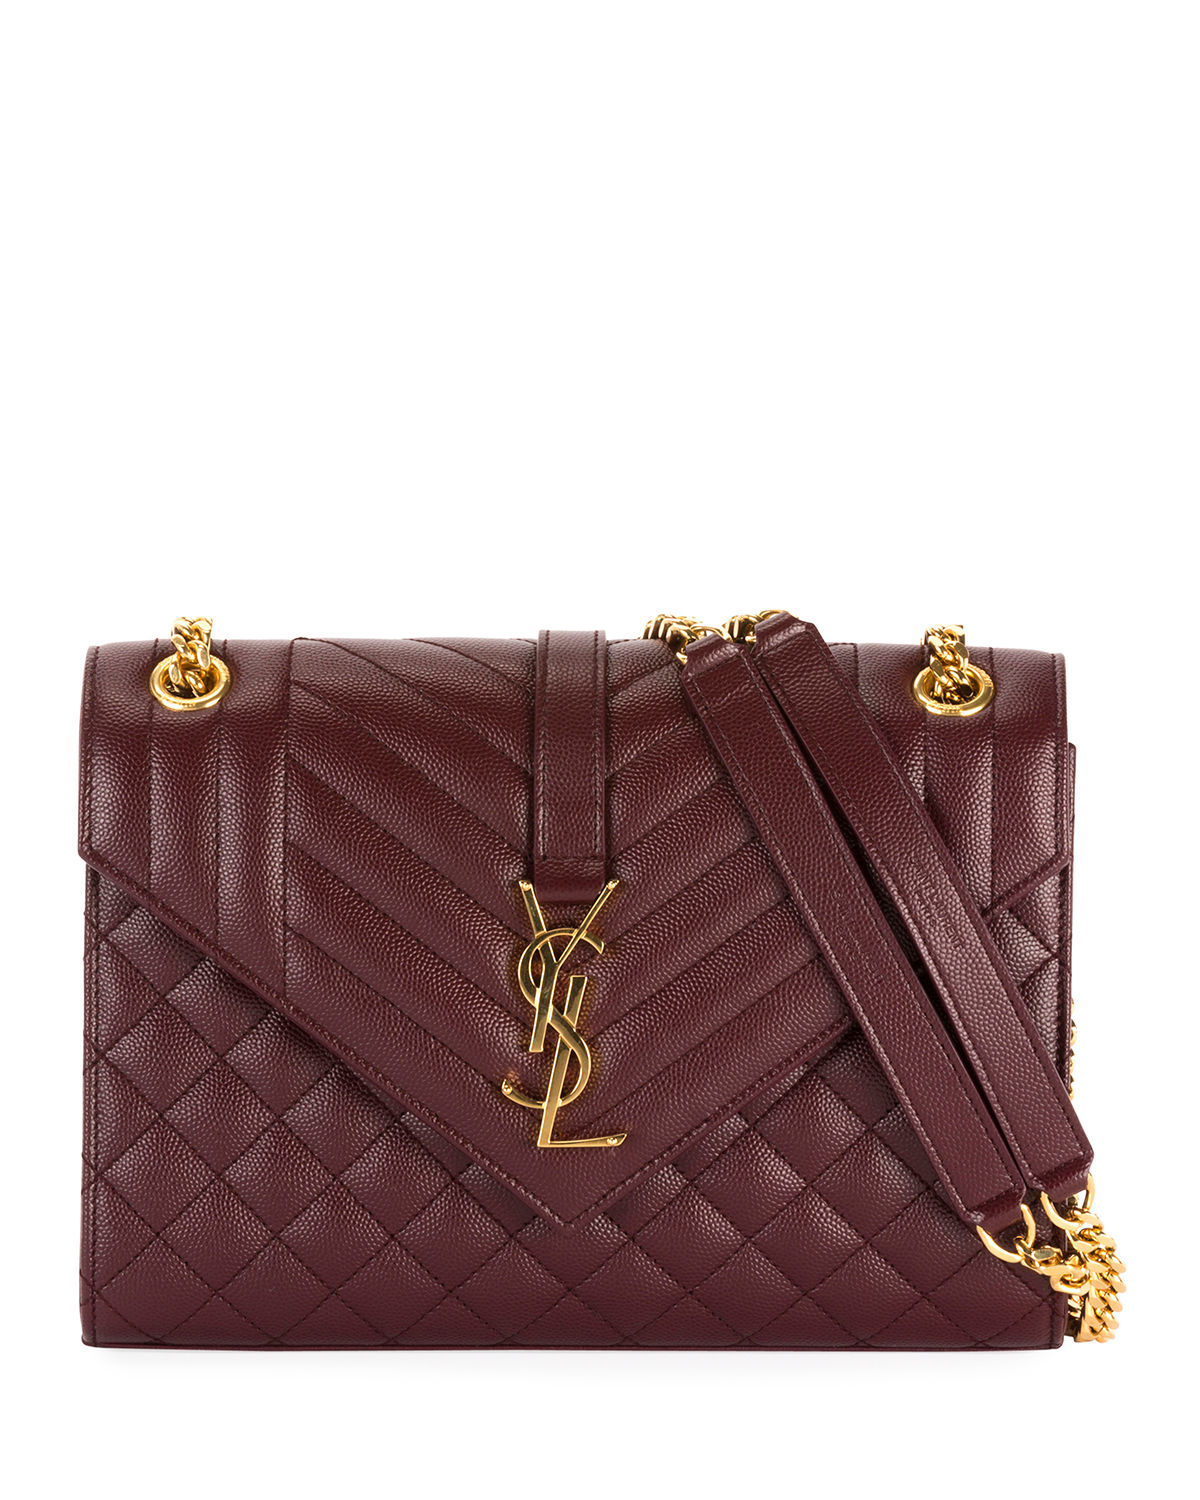 87d92a07c84 Saint Laurent V Flap Monogram YSL Medium Envelope Chain Shoulder Bag -  Golden Hardware